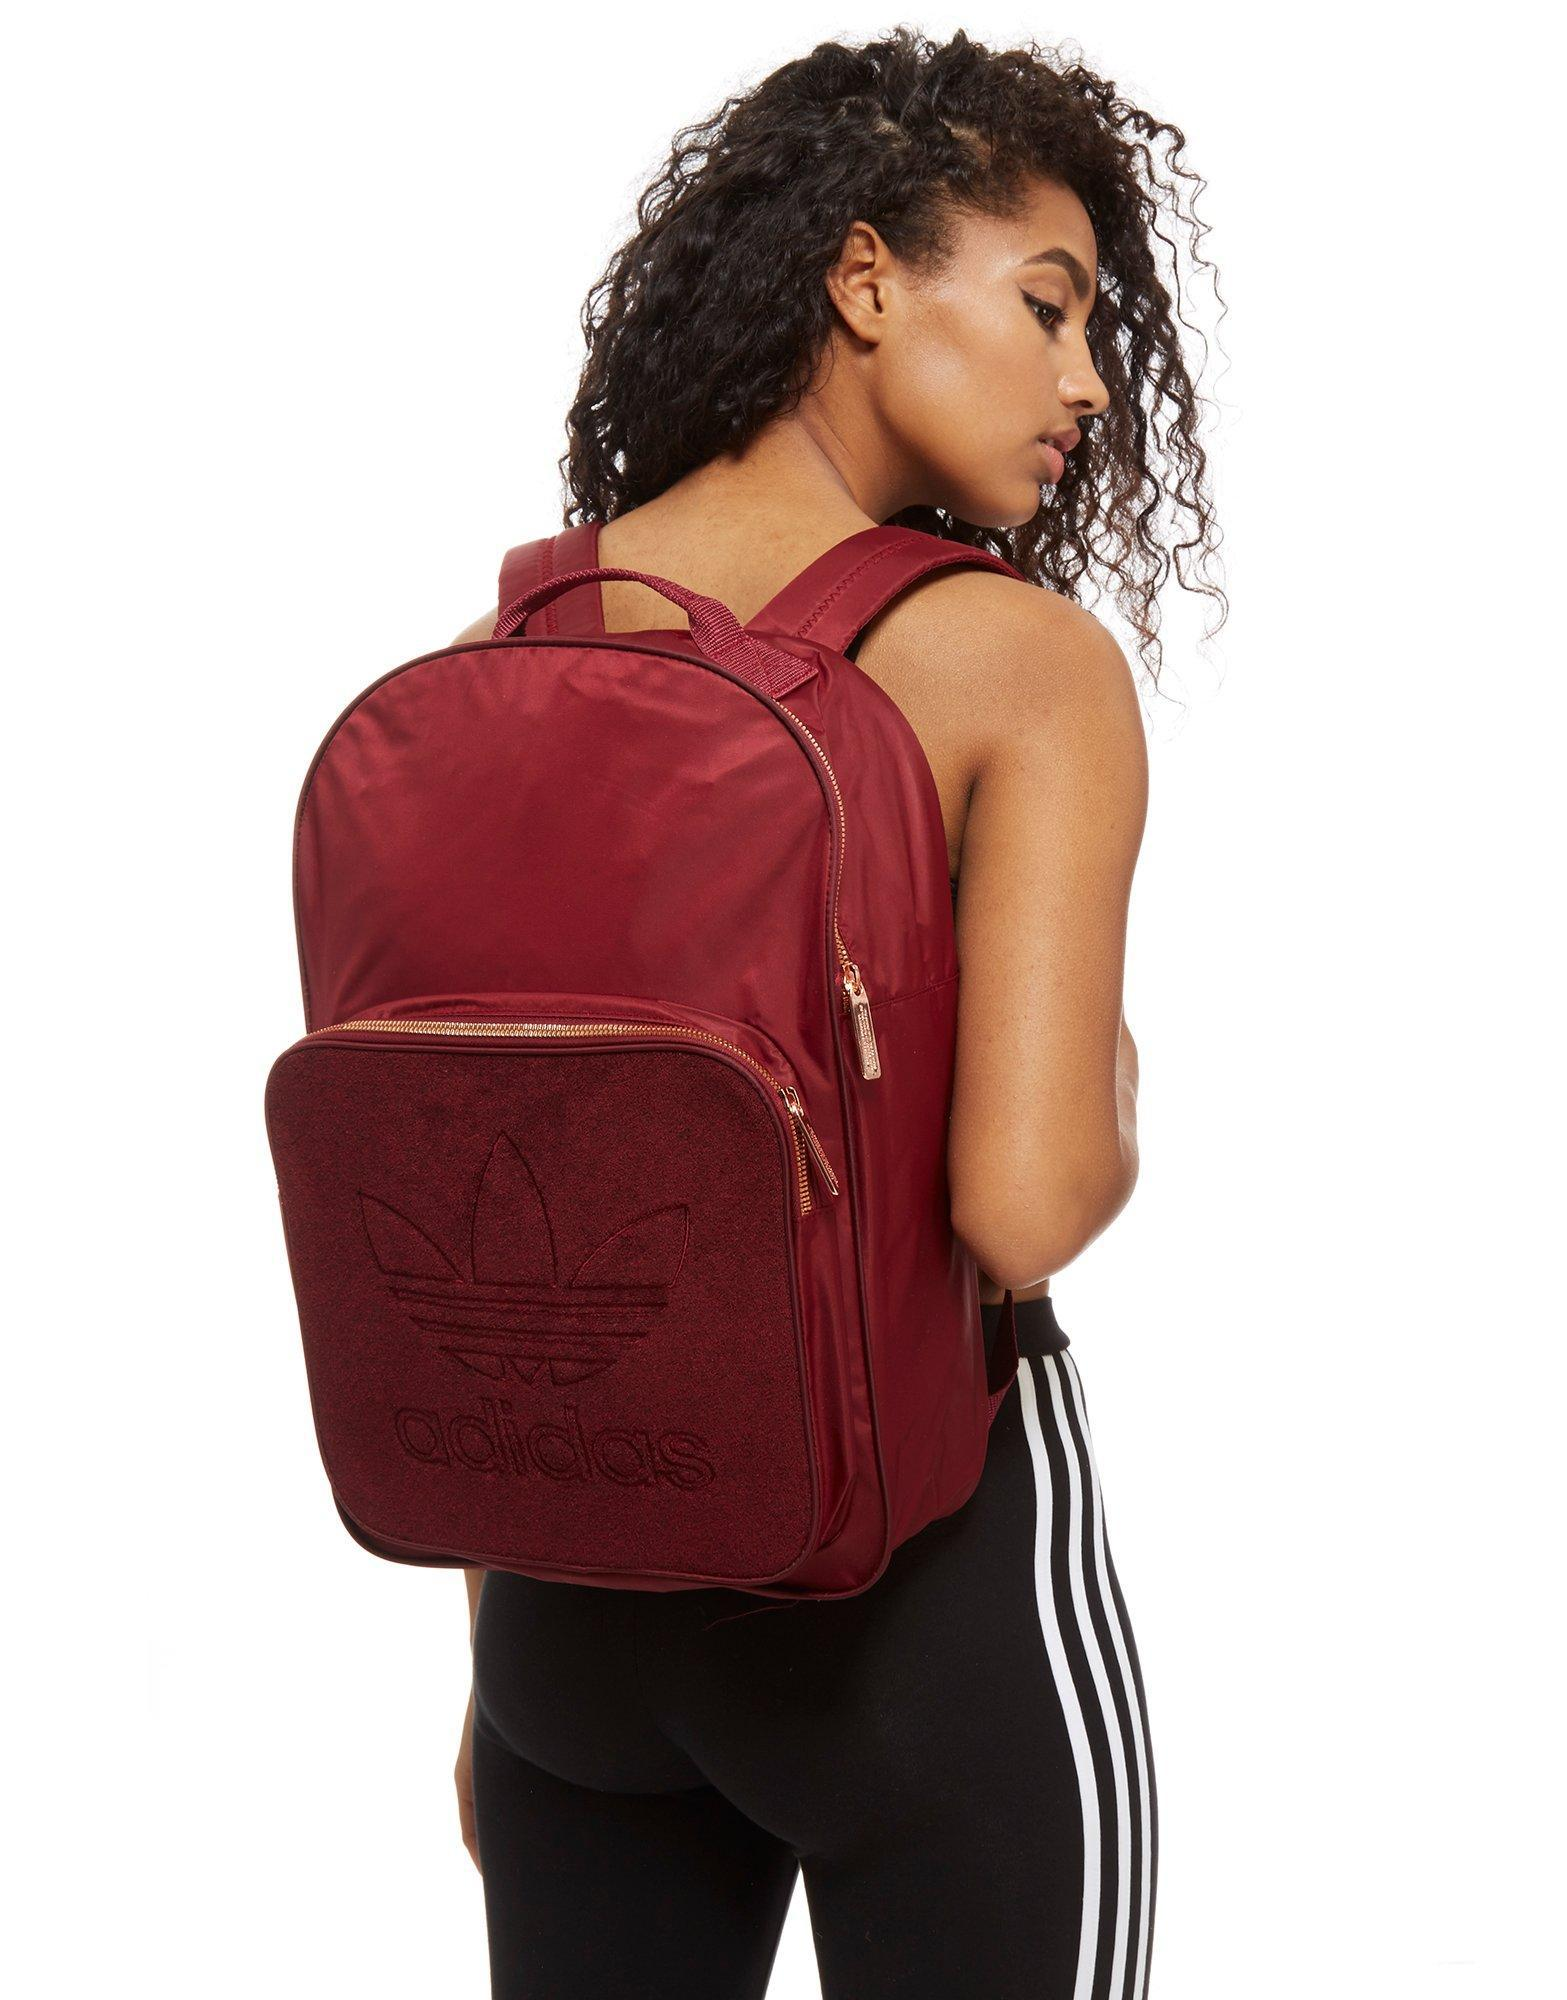 3e73f015e1 adidas Originals Classic Velour Backpack in Red - Lyst